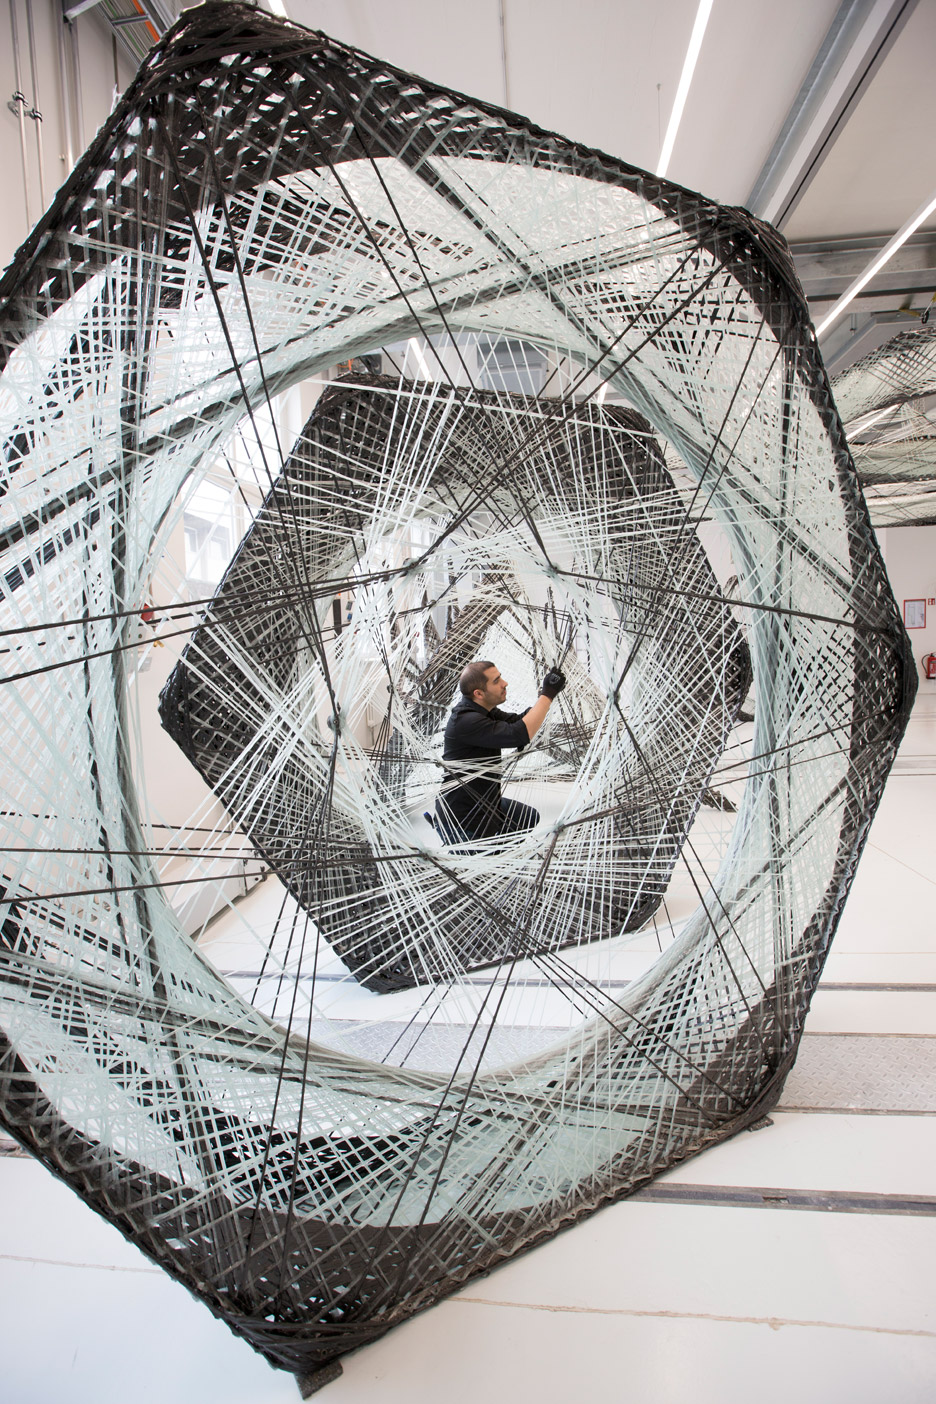 The Elytra Filament Pavilion by a team from University of Stuttgart